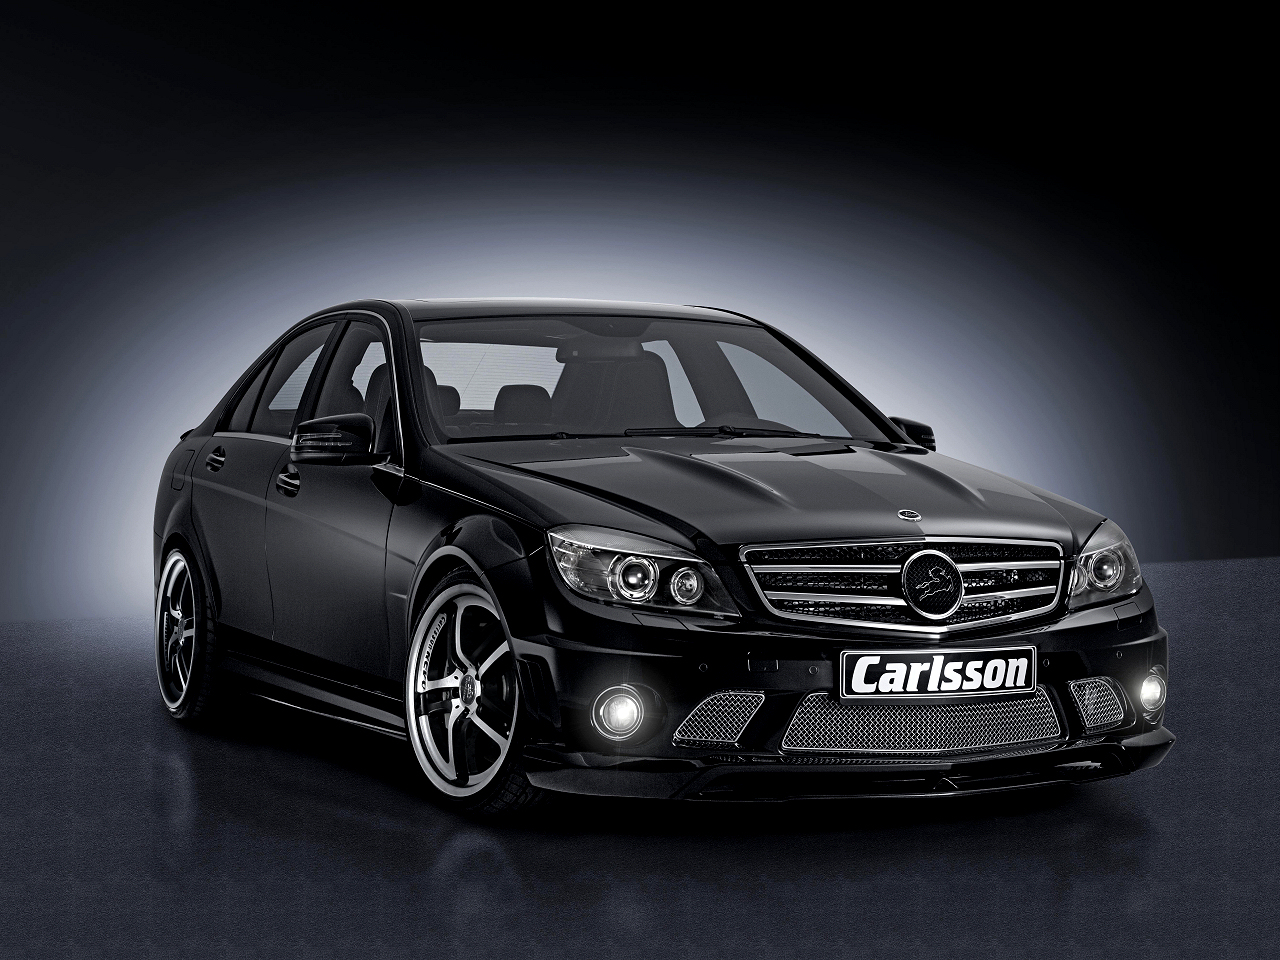 Carlsson Revo 1/5  mounted to the Mercedes C-class